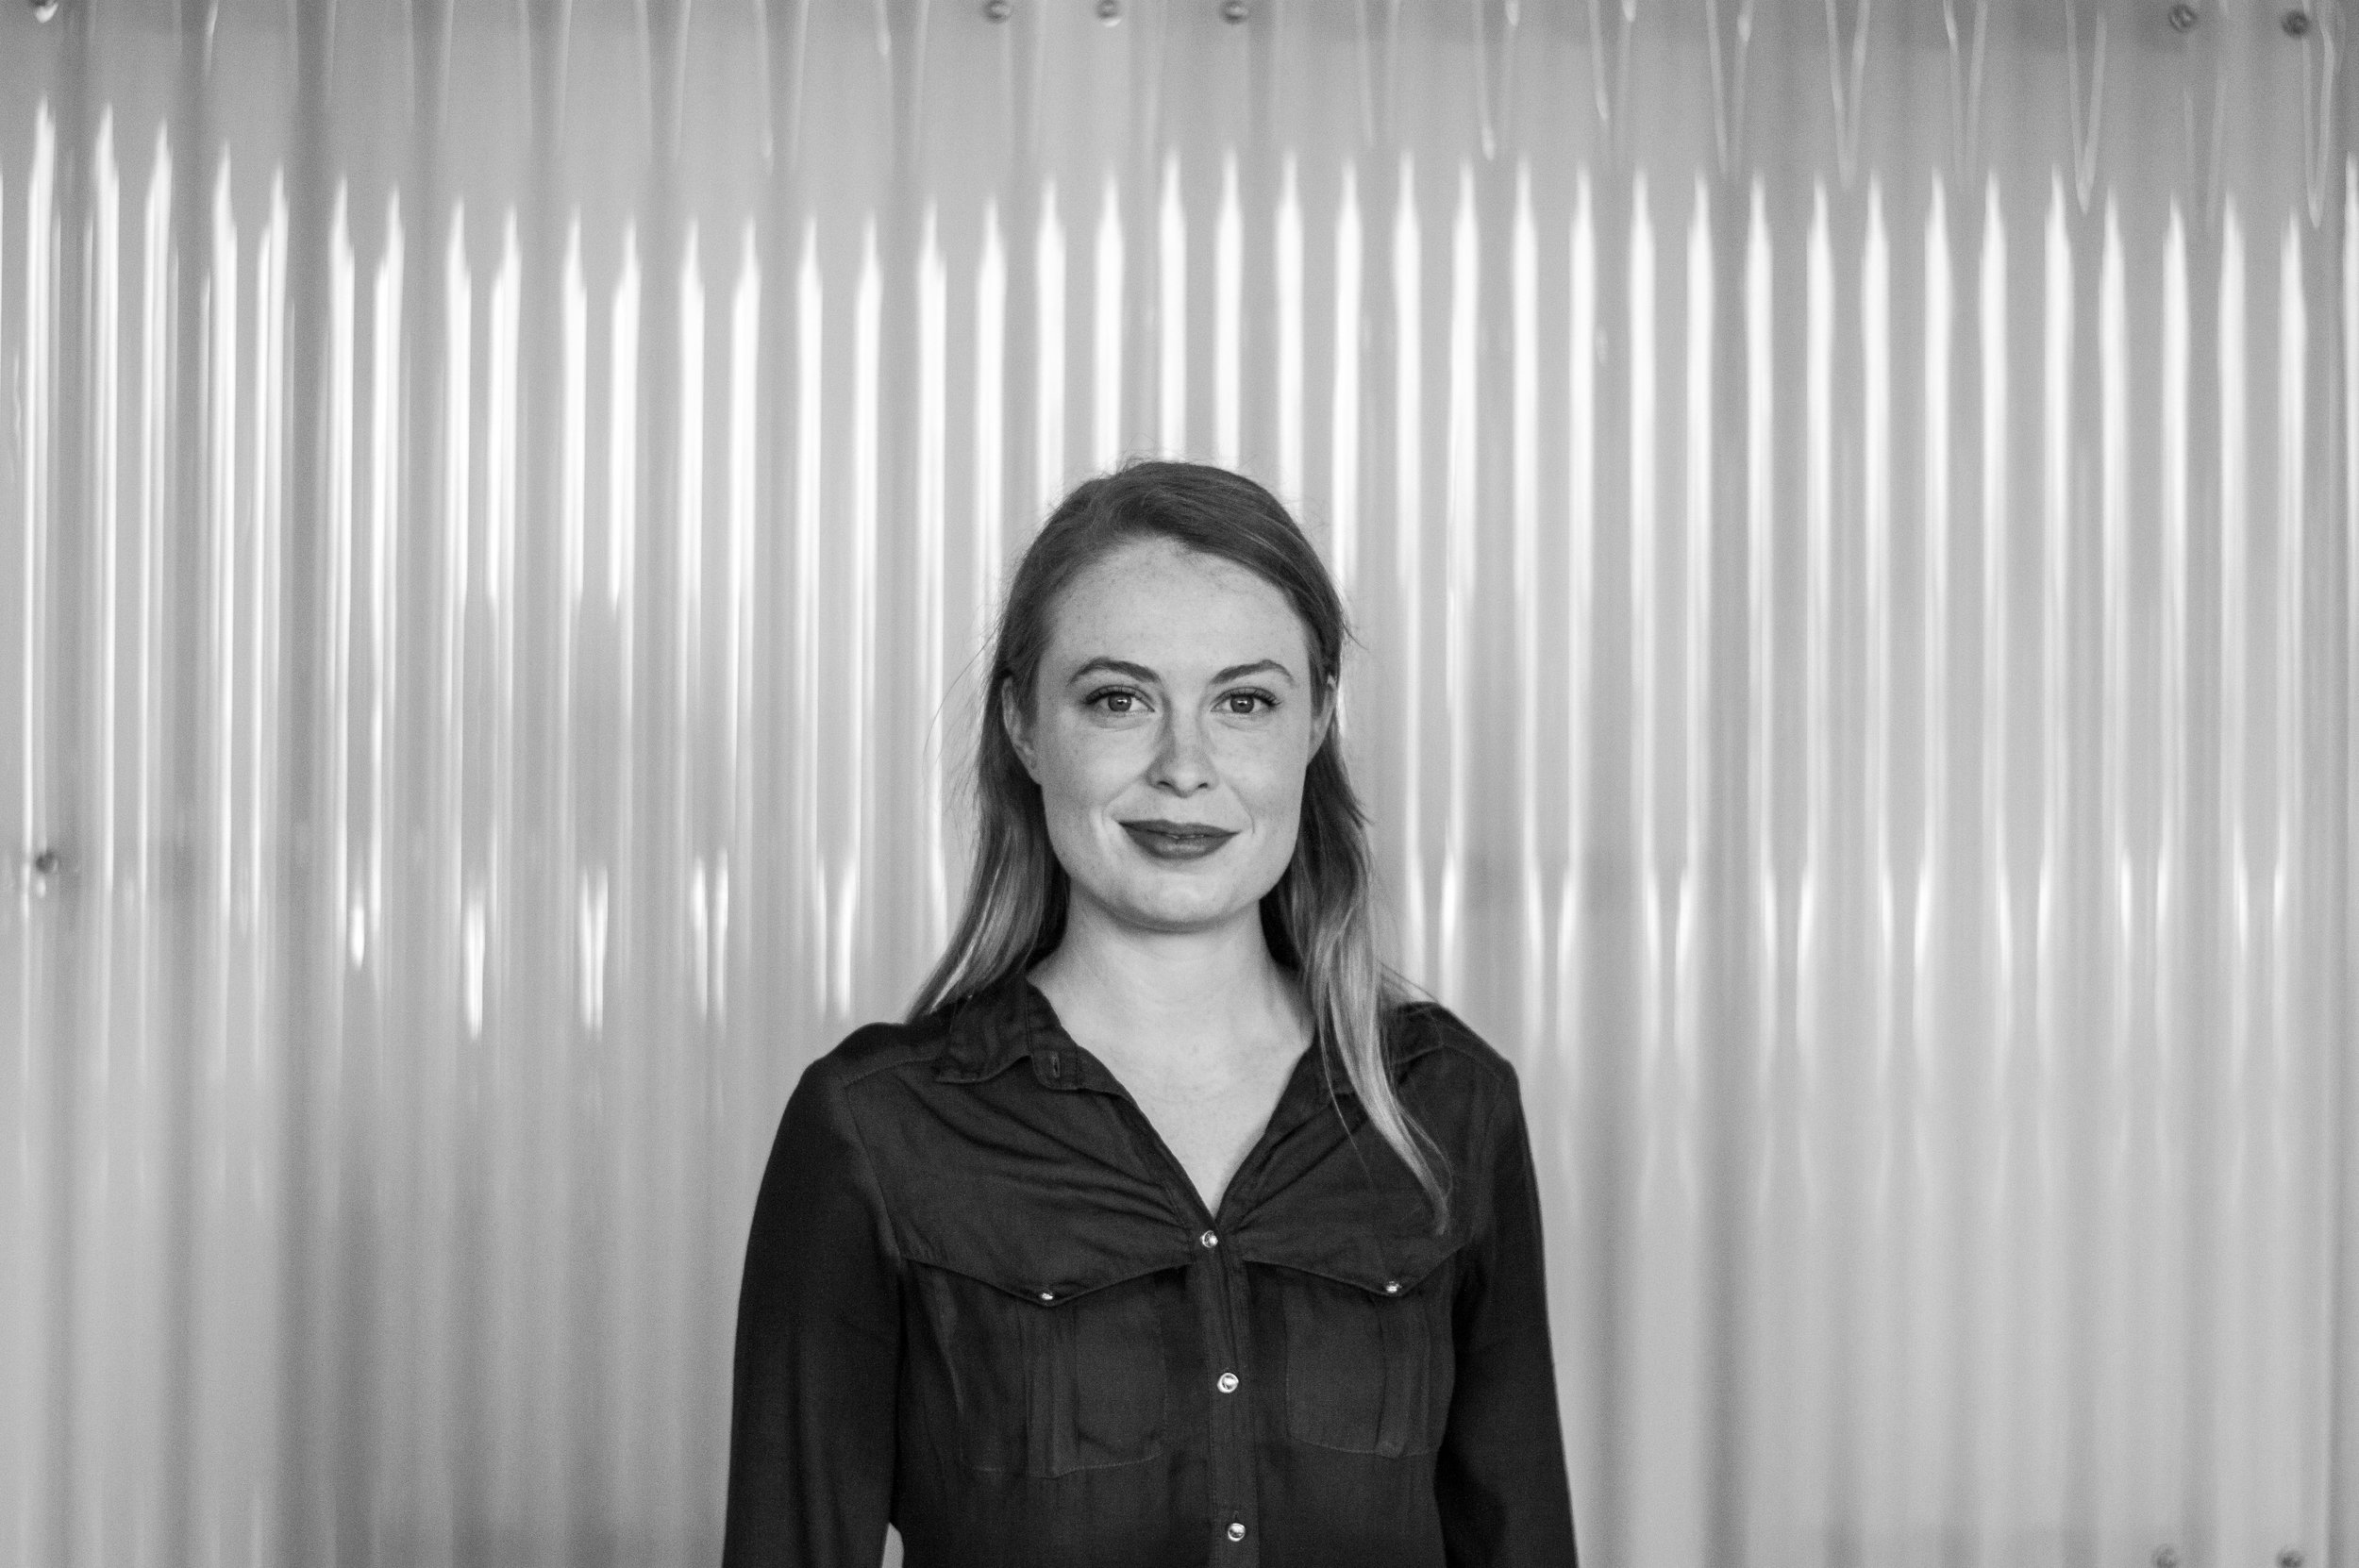 Sarah Asher  |  Graduate Architect